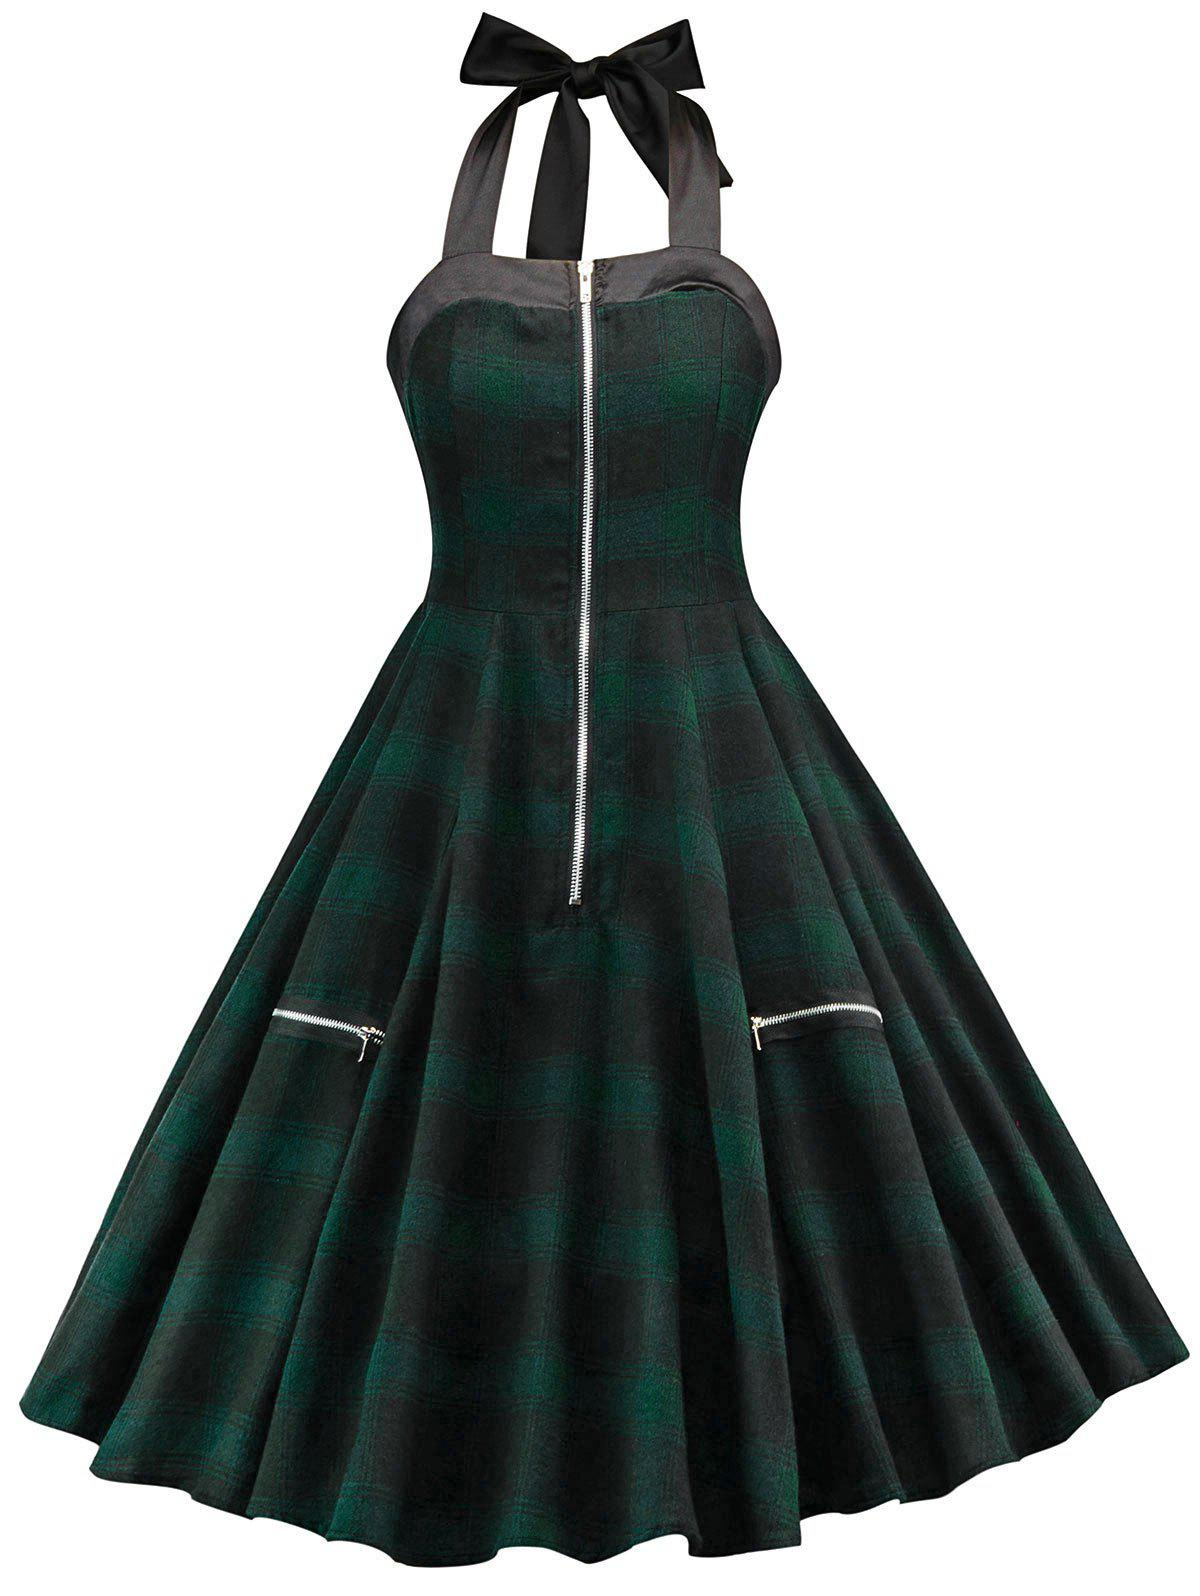 Chic Tartan Print Halter Neck Vintage Dress